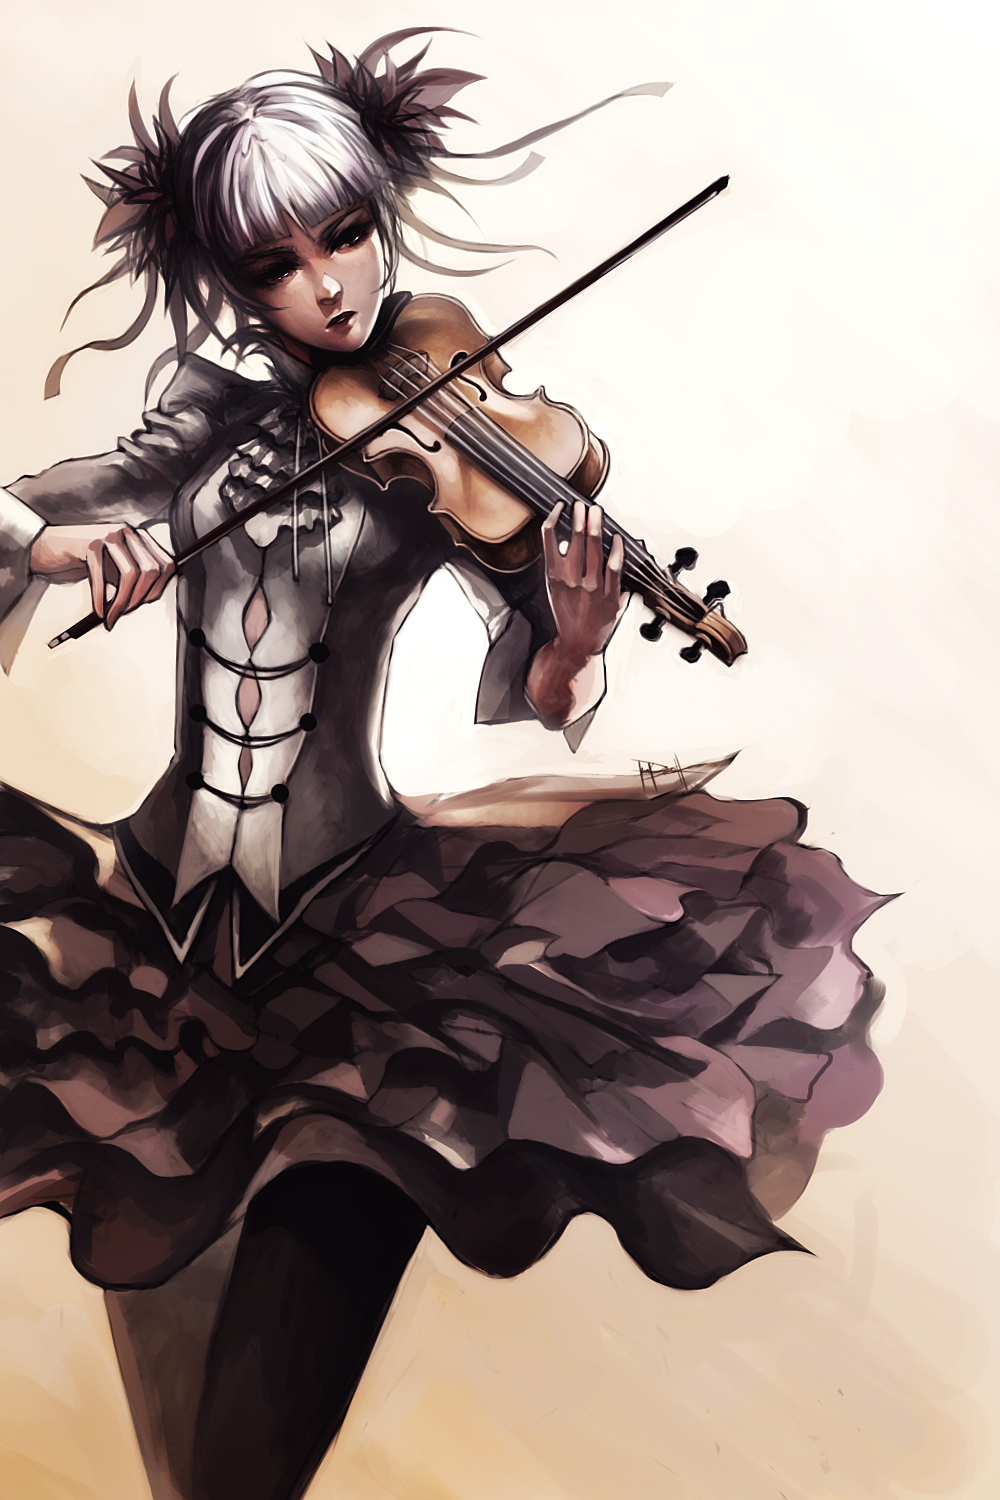 Violin Girl by Ninjatic